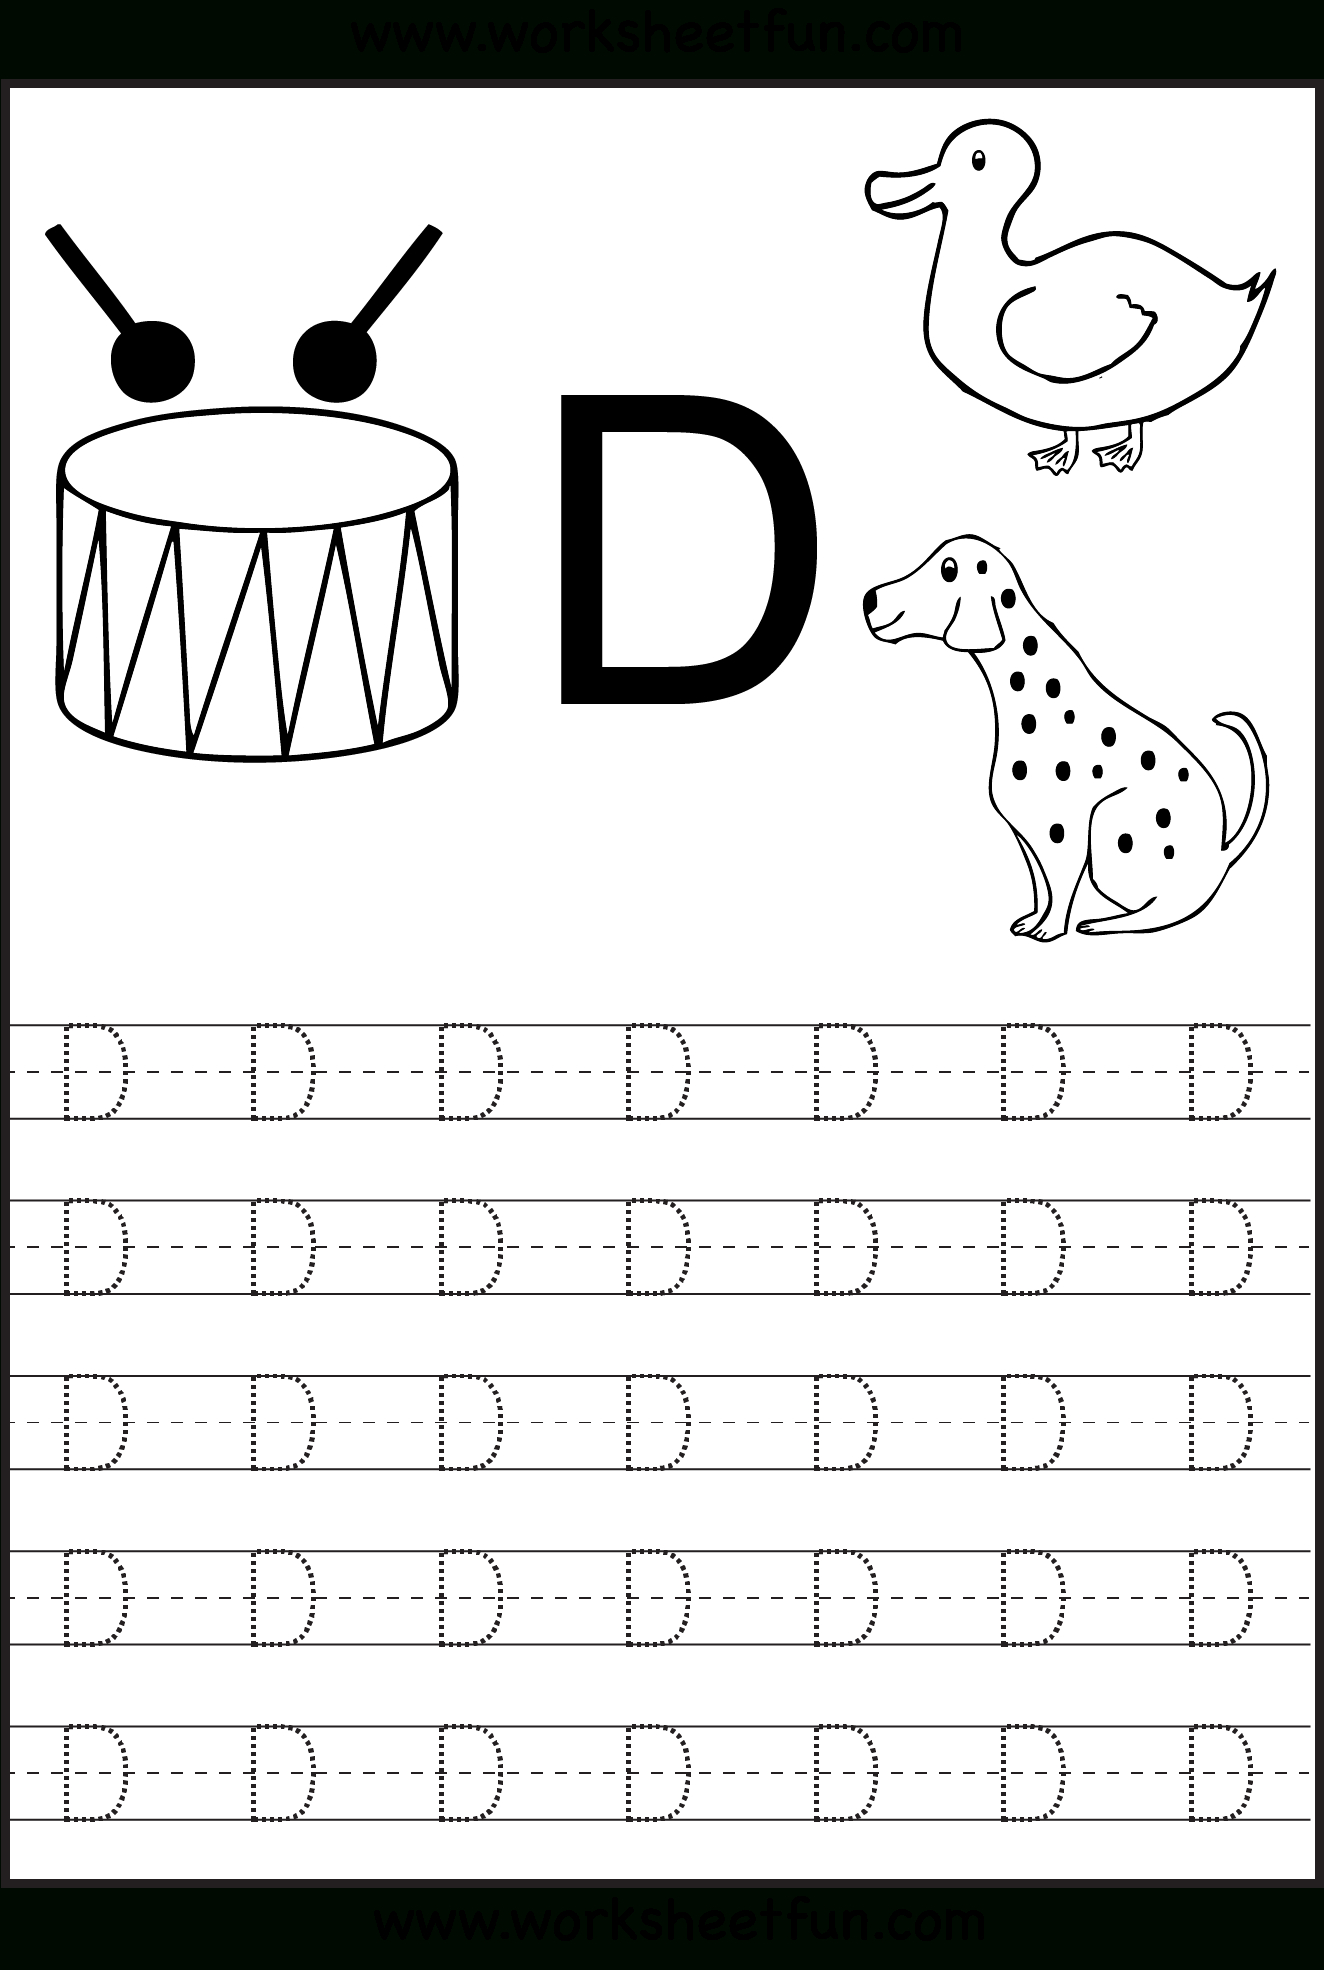 Free Printable Worksheets - Contents | Alphabet Tracing with regard to D Letter Tracing Worksheet